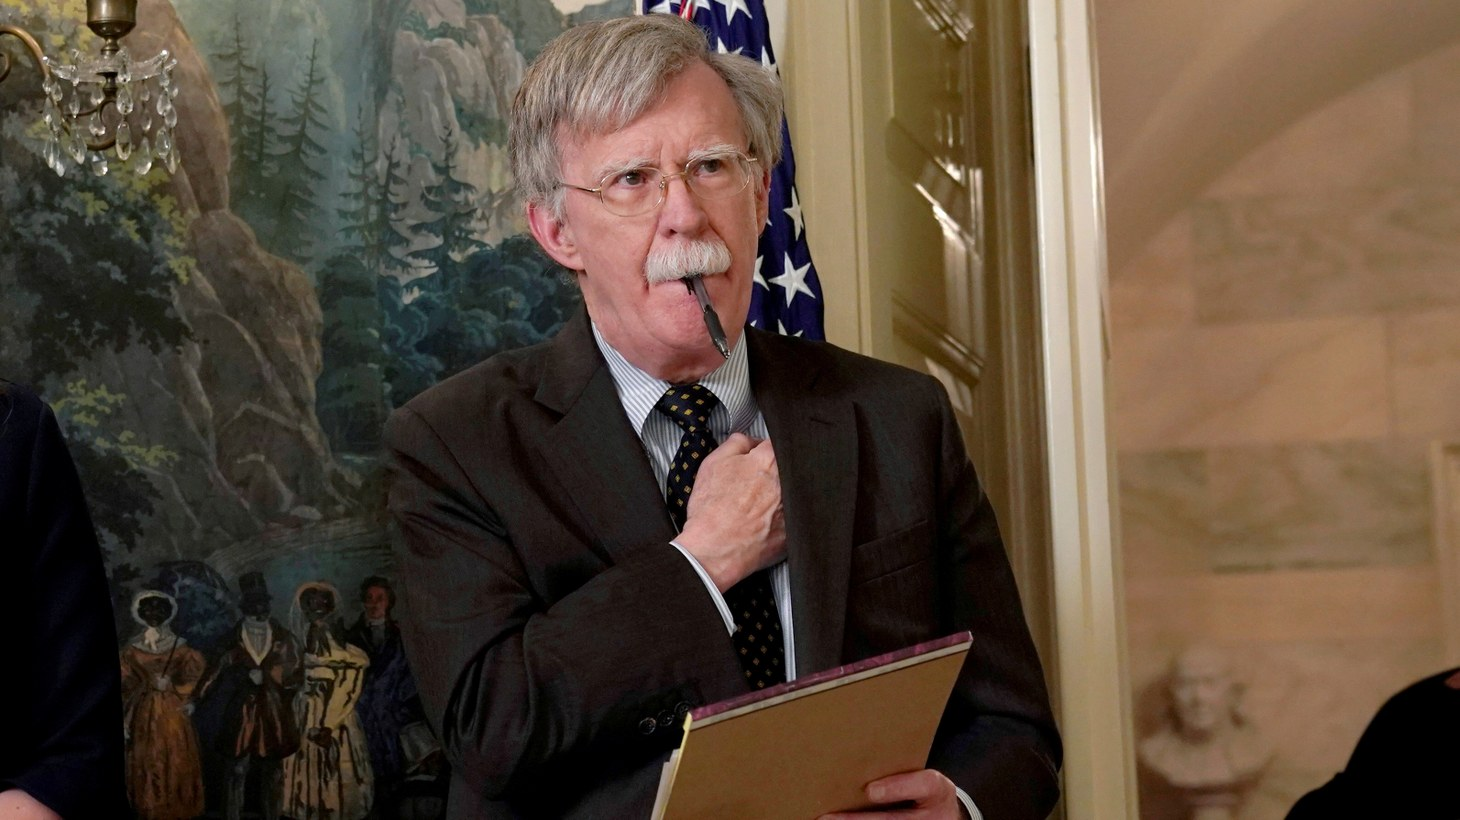 National Security Adviser John Bolton listens to U.S. President Donald Trump's statement on Syria at the White House in Washington, U.S., April 13, 2018. Picture taken April 13, 2018.